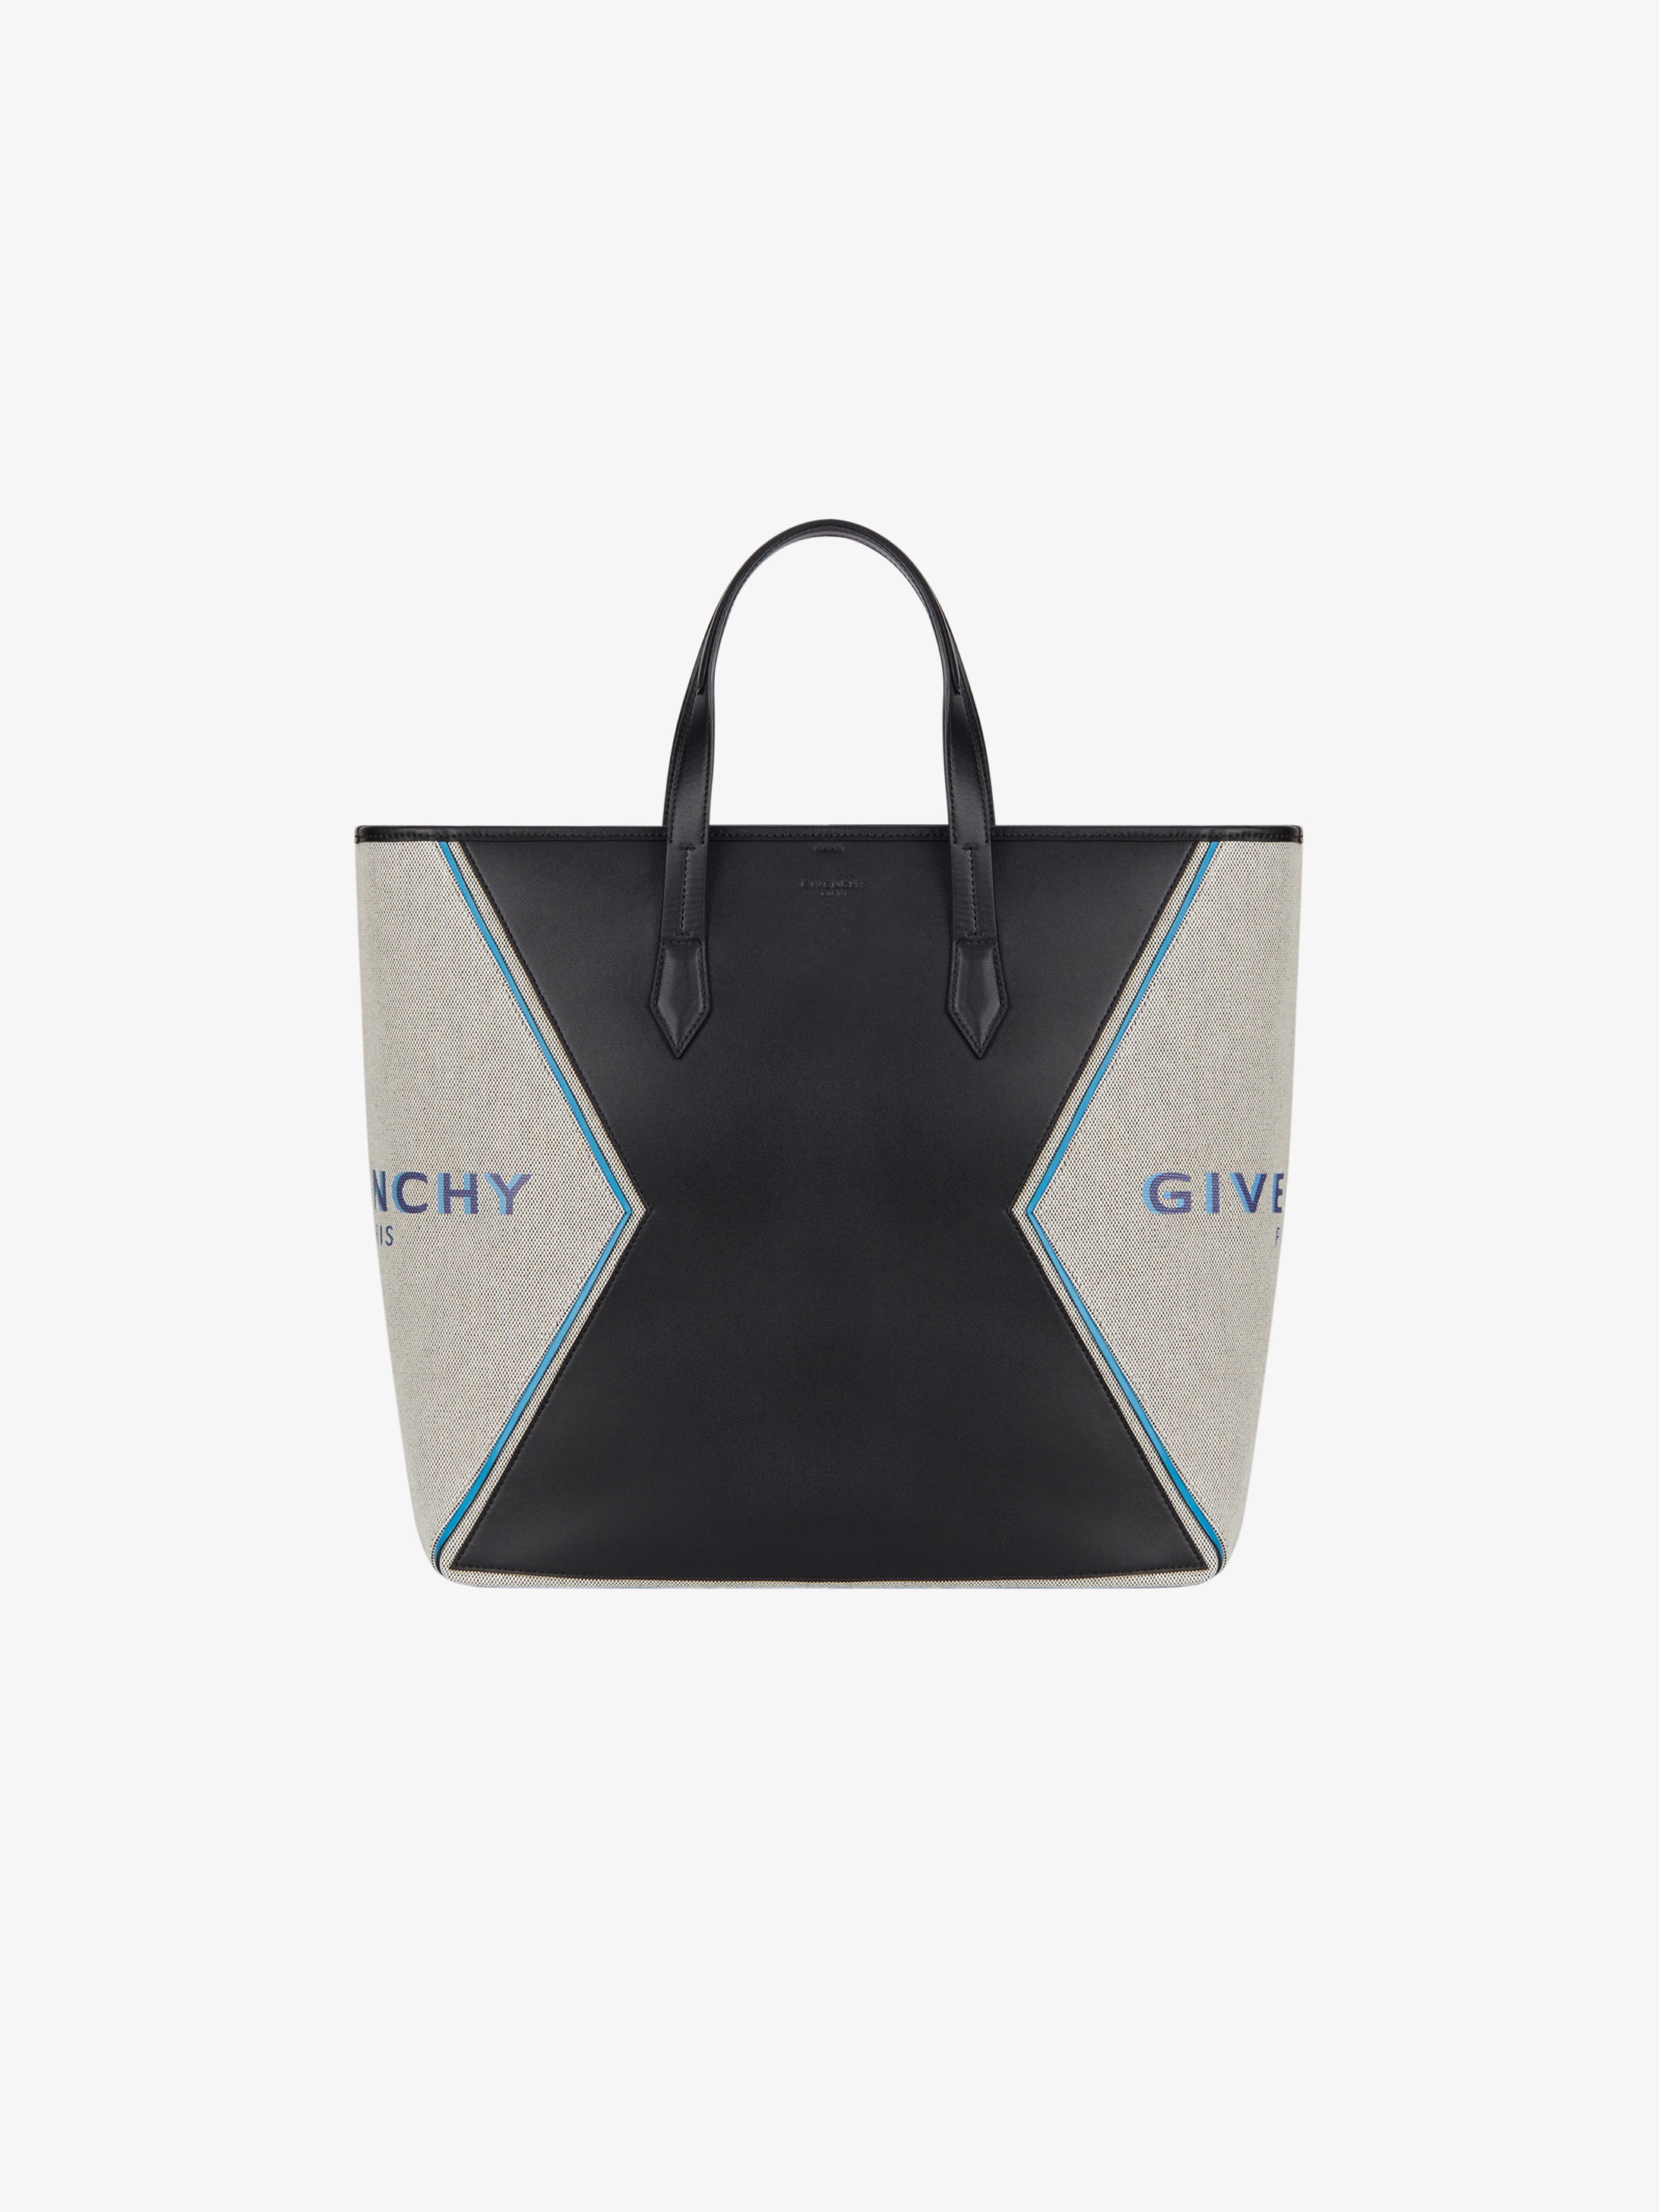 GIVENCHY PARIS Bond shopping bag in leather and canvas